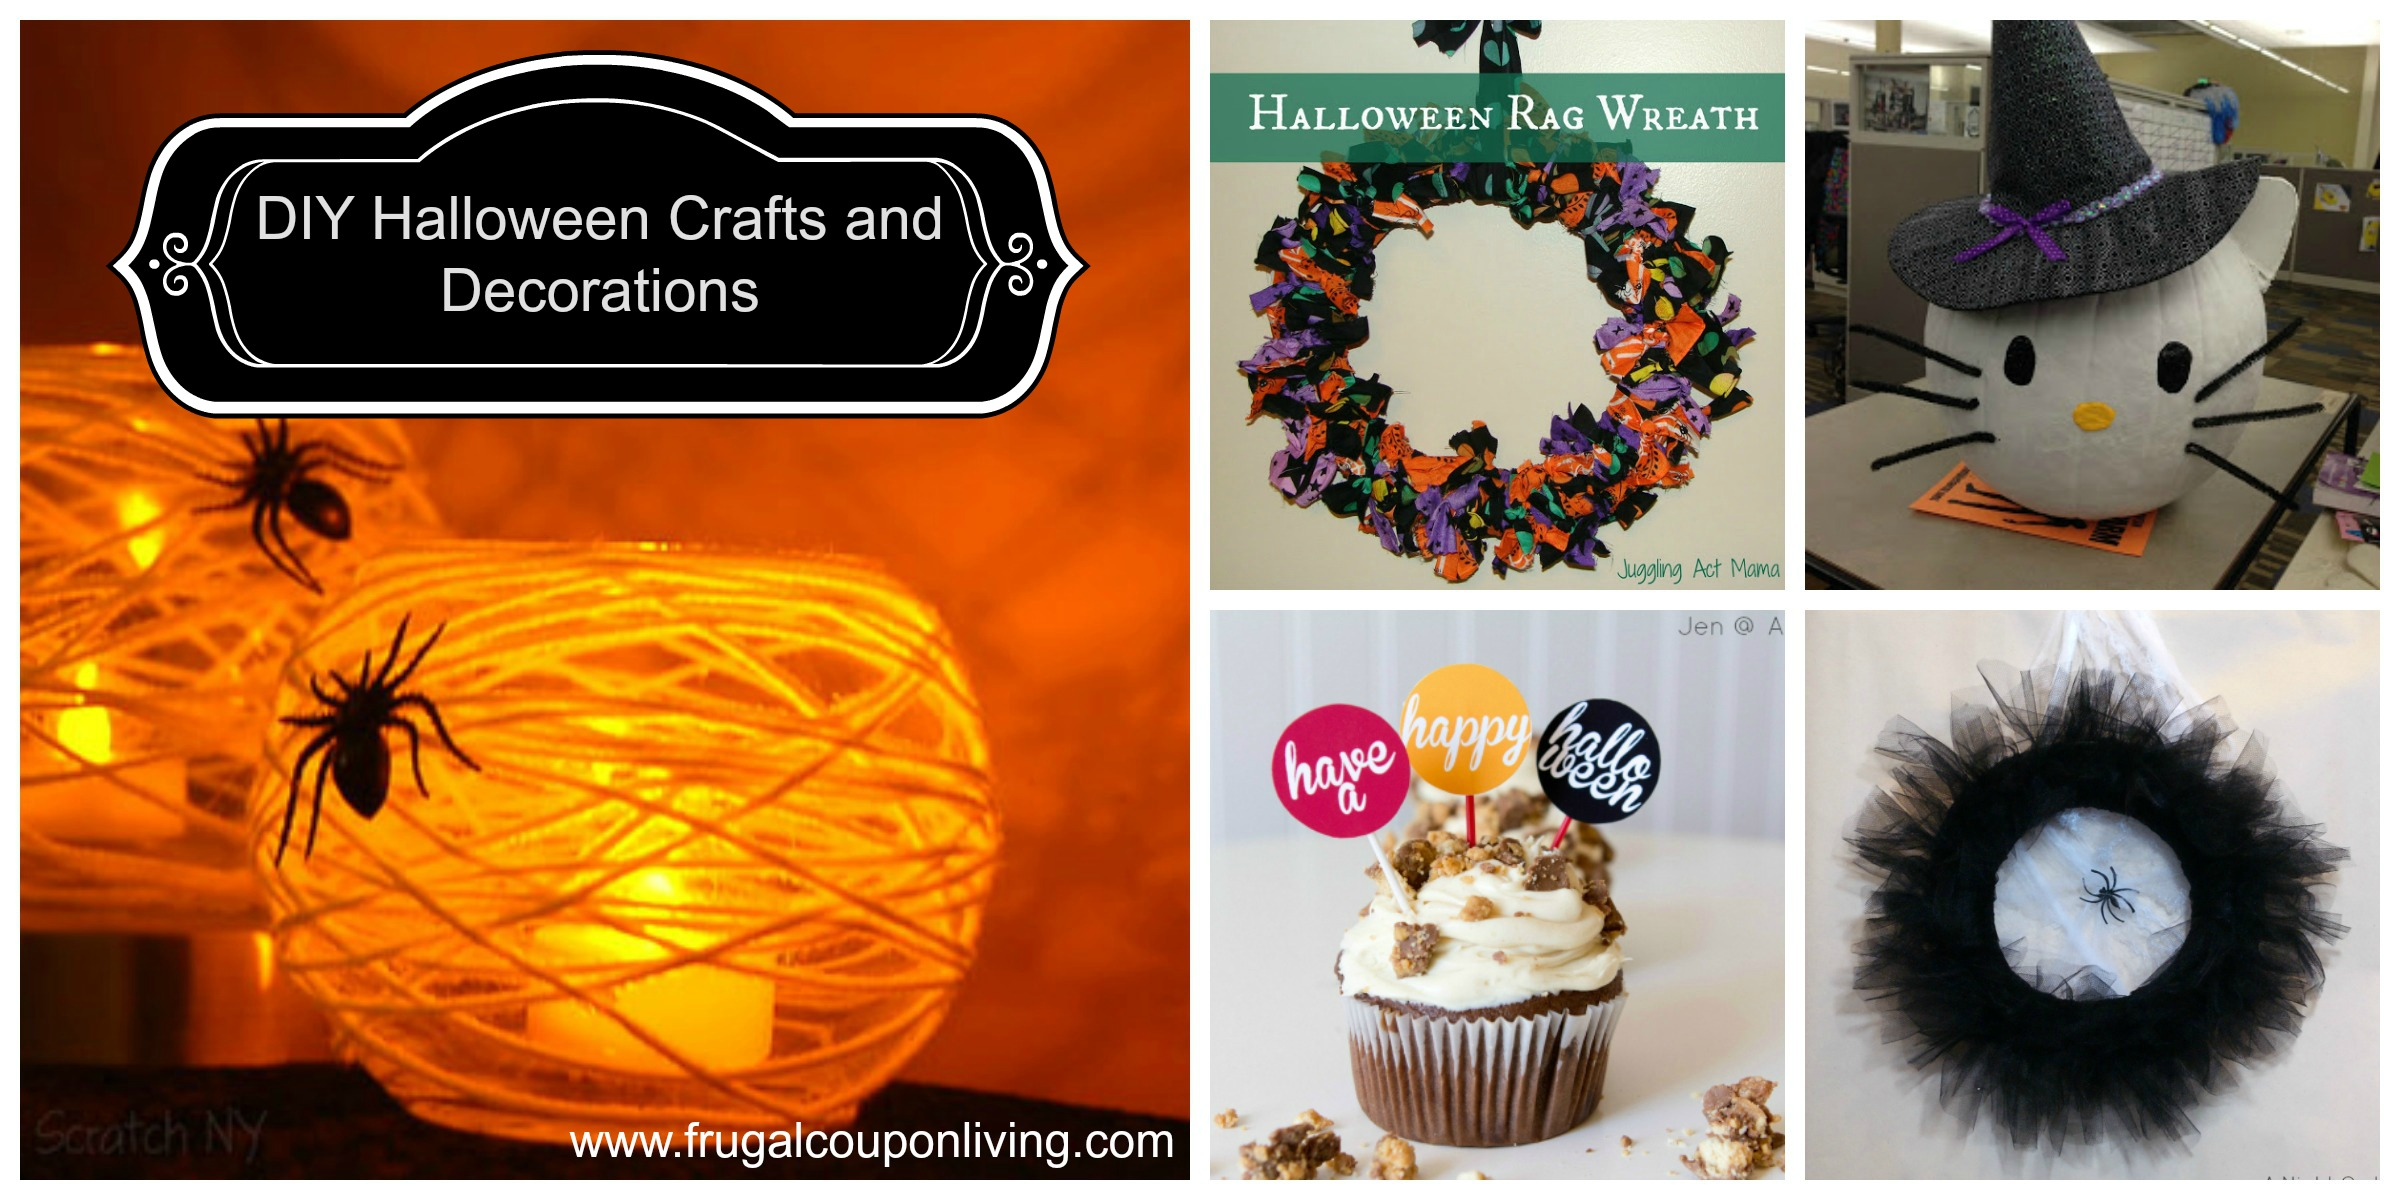 diy halloween crafts and decorations frugal coupon livingjpg - Craft Halloween Decorations